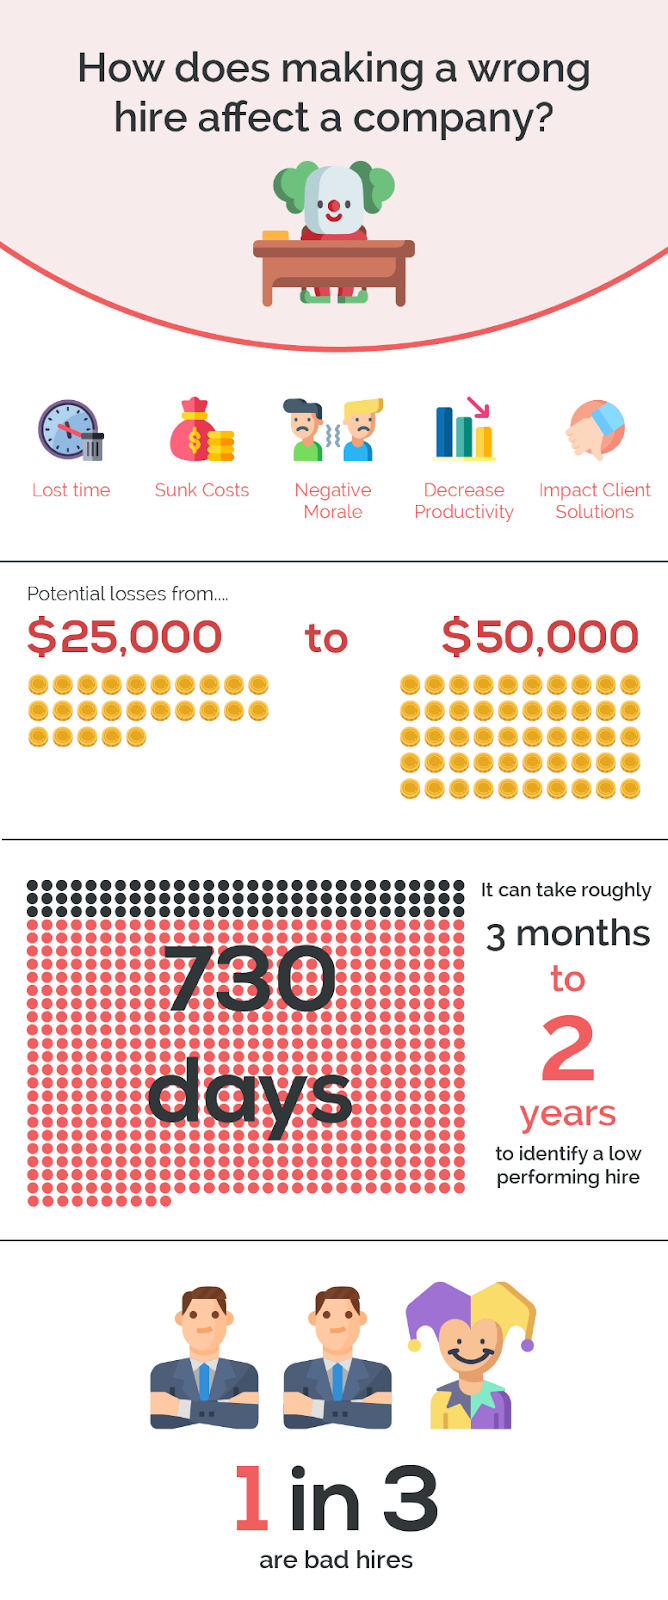 Consequences of a bad hire infographic